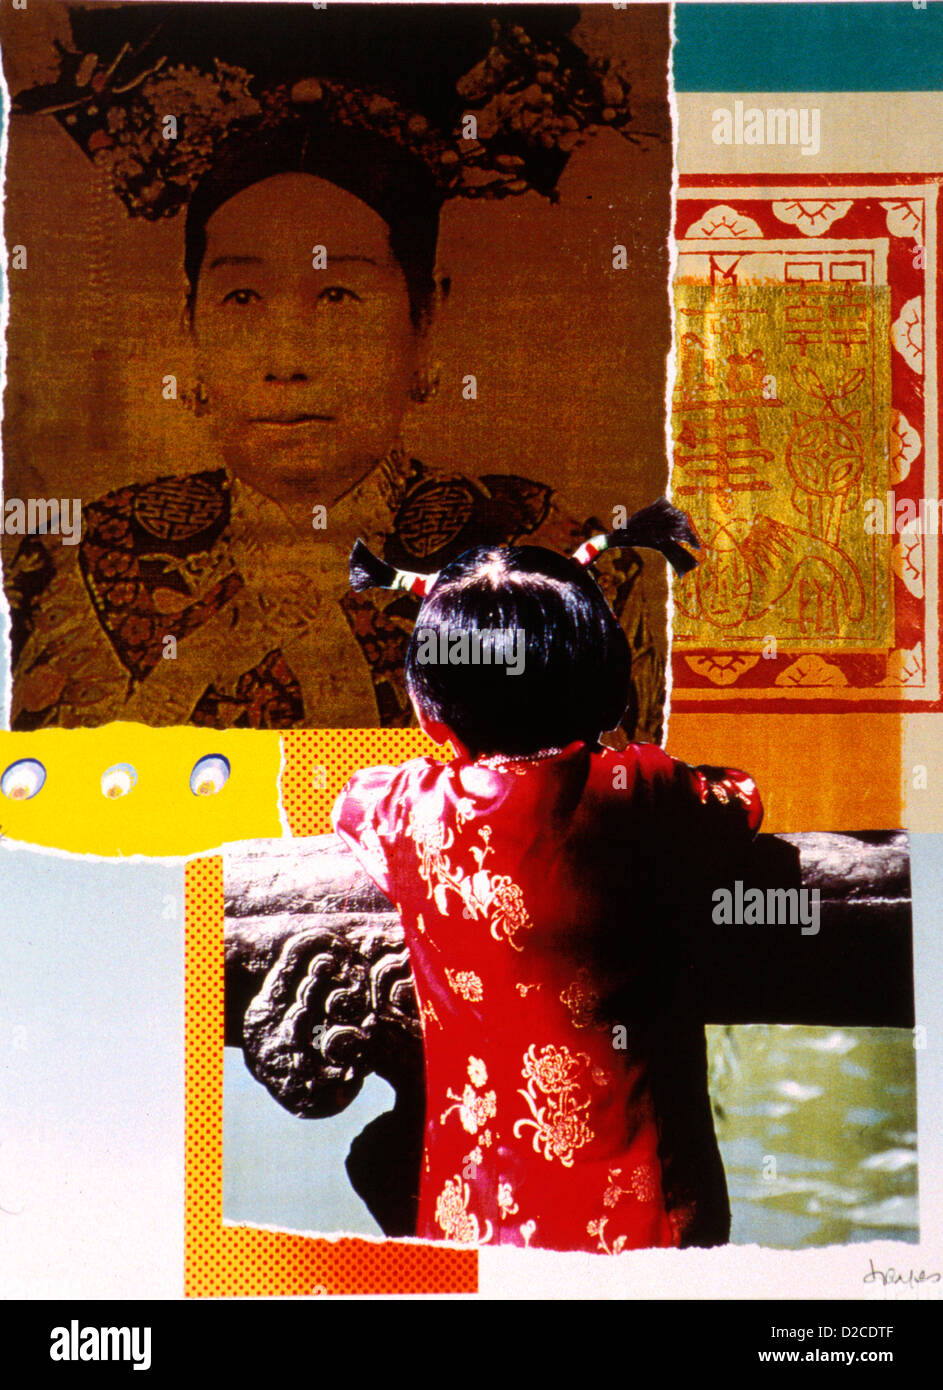 Dowager Empress. Photo Collage. - Stock Image